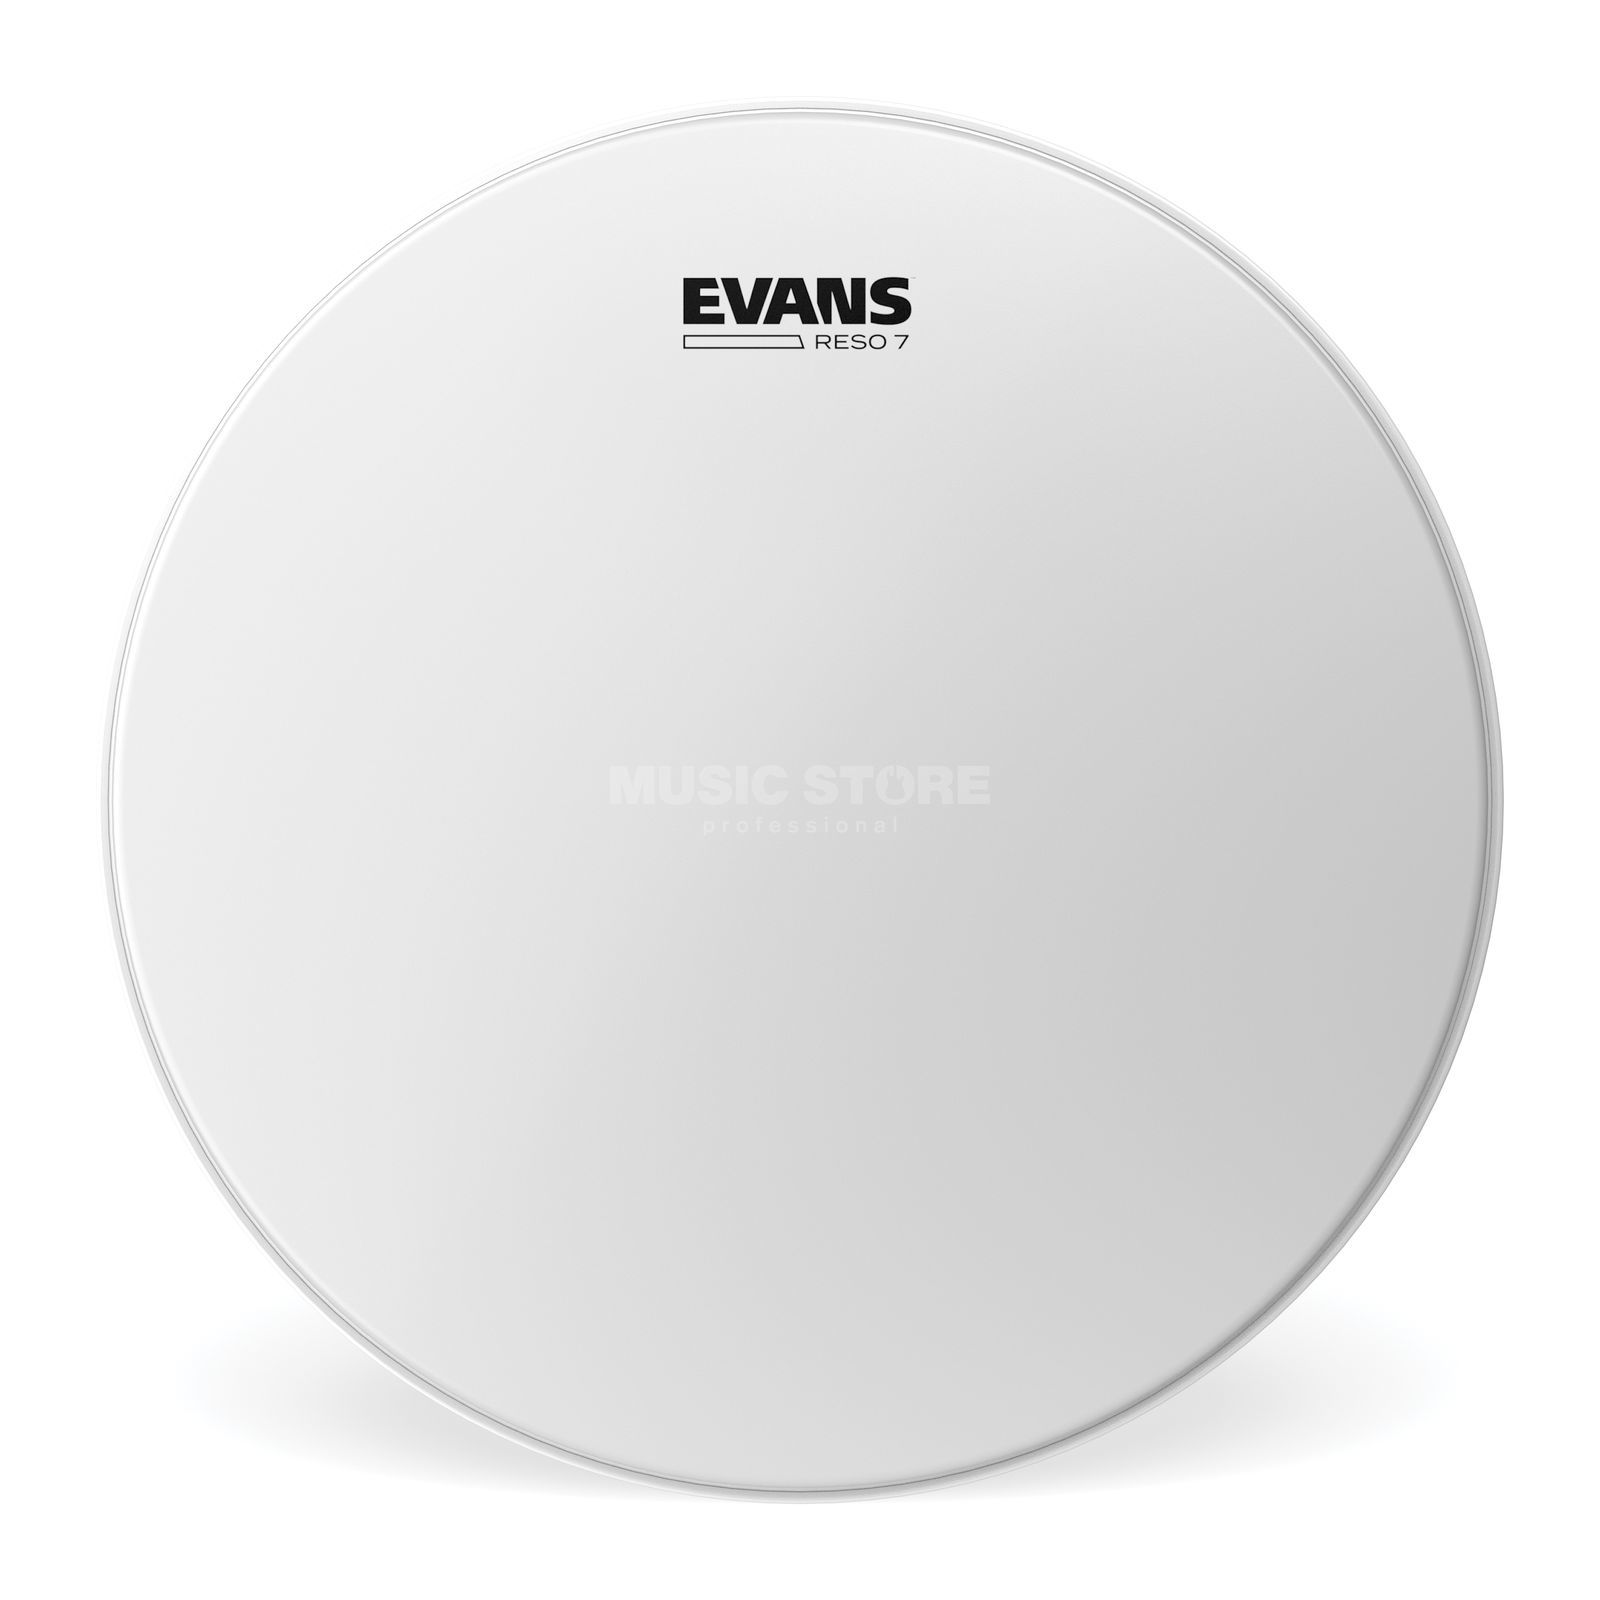 "Evans Reso 7 Coated 15"", B15RES7, Tom Reso Product Image"